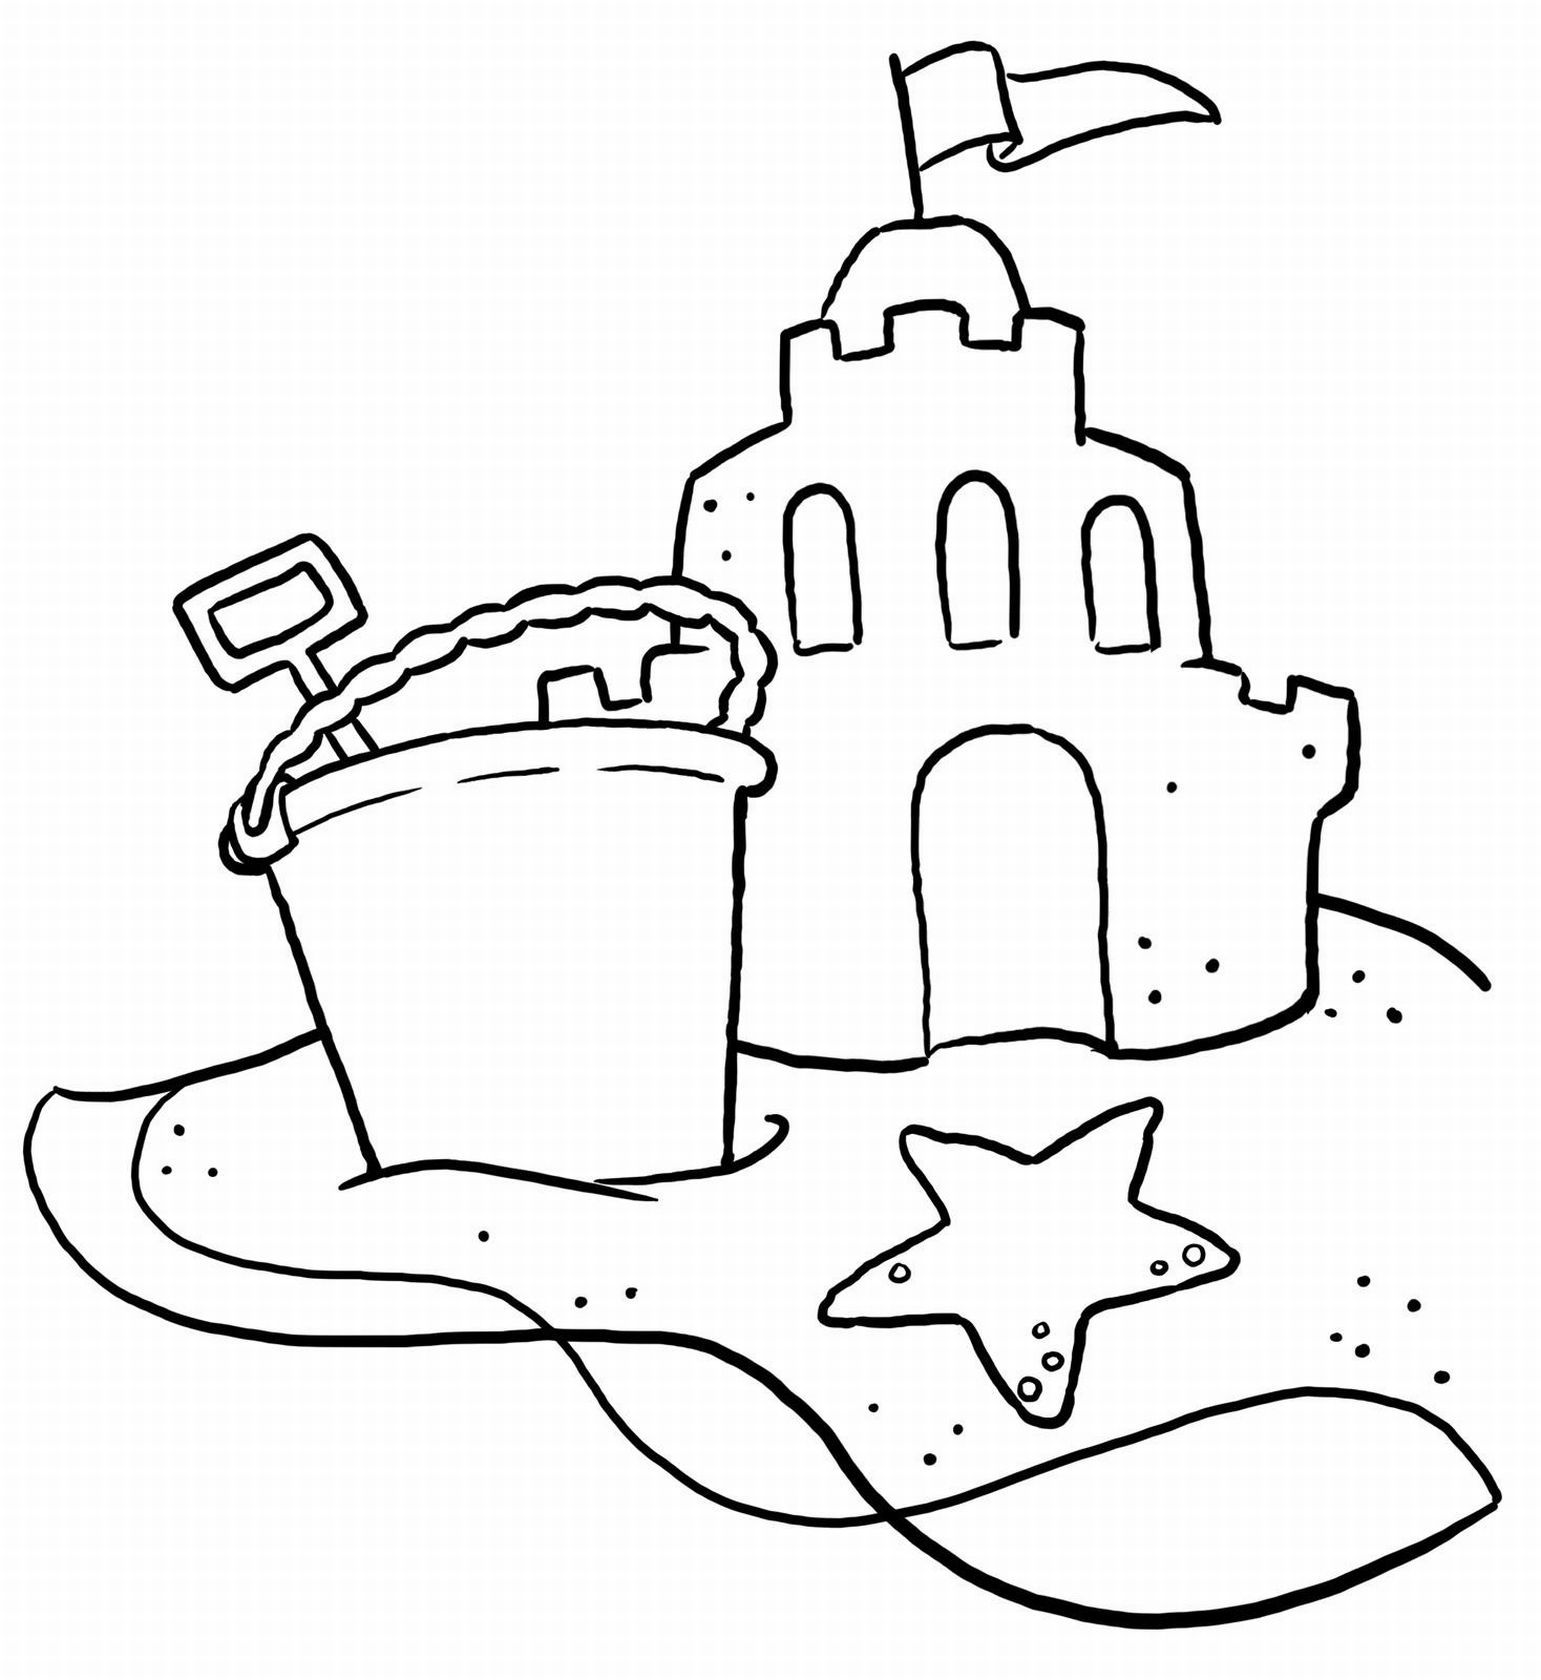 Printable coloring pages sand castle - Beach Coloring Pages 20 Free Printable Sheets To Color